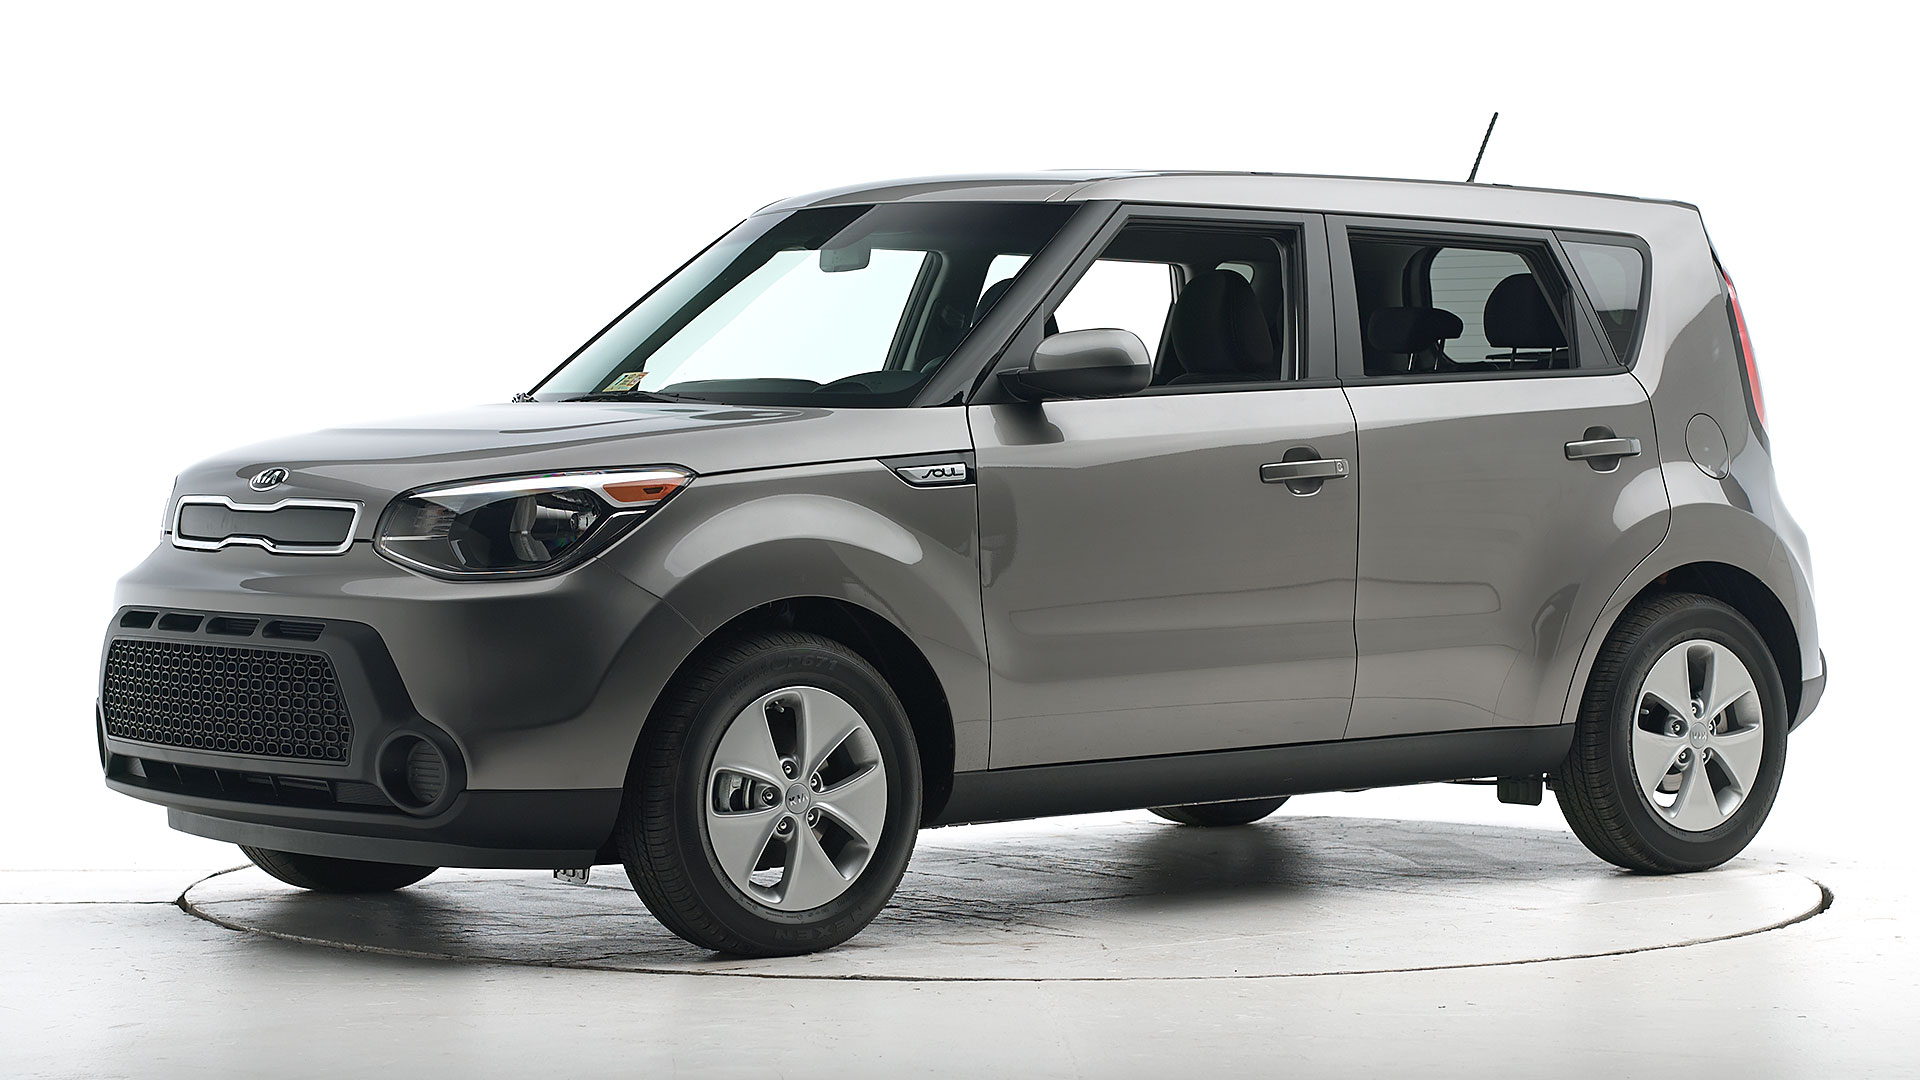 2015 Kia Soul 4-door wagon